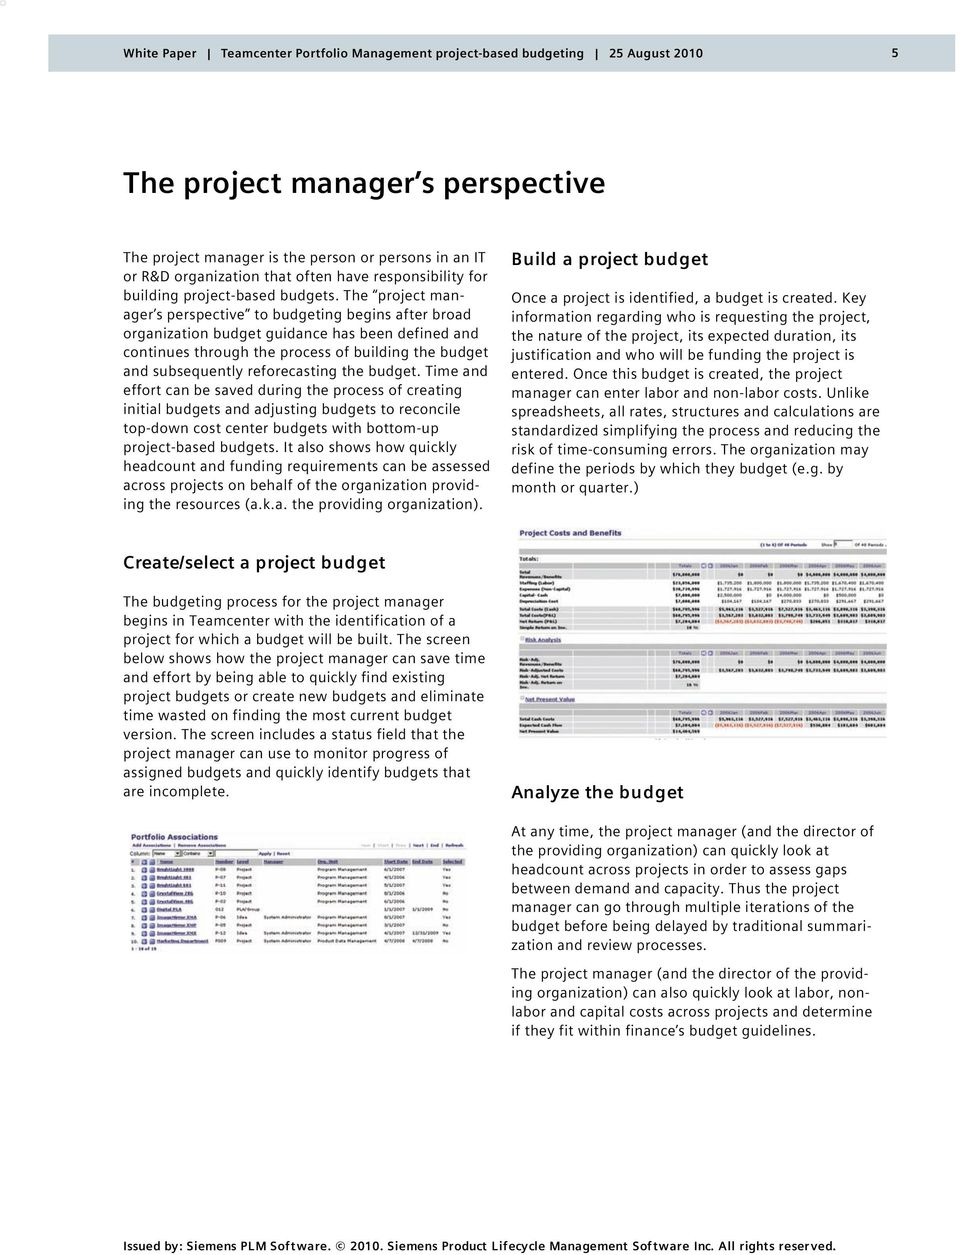 The project manager s perspective to budgeting begins after broad organization budget guidance has been defined and continues through the process of building the budget and subsequently reforecasting